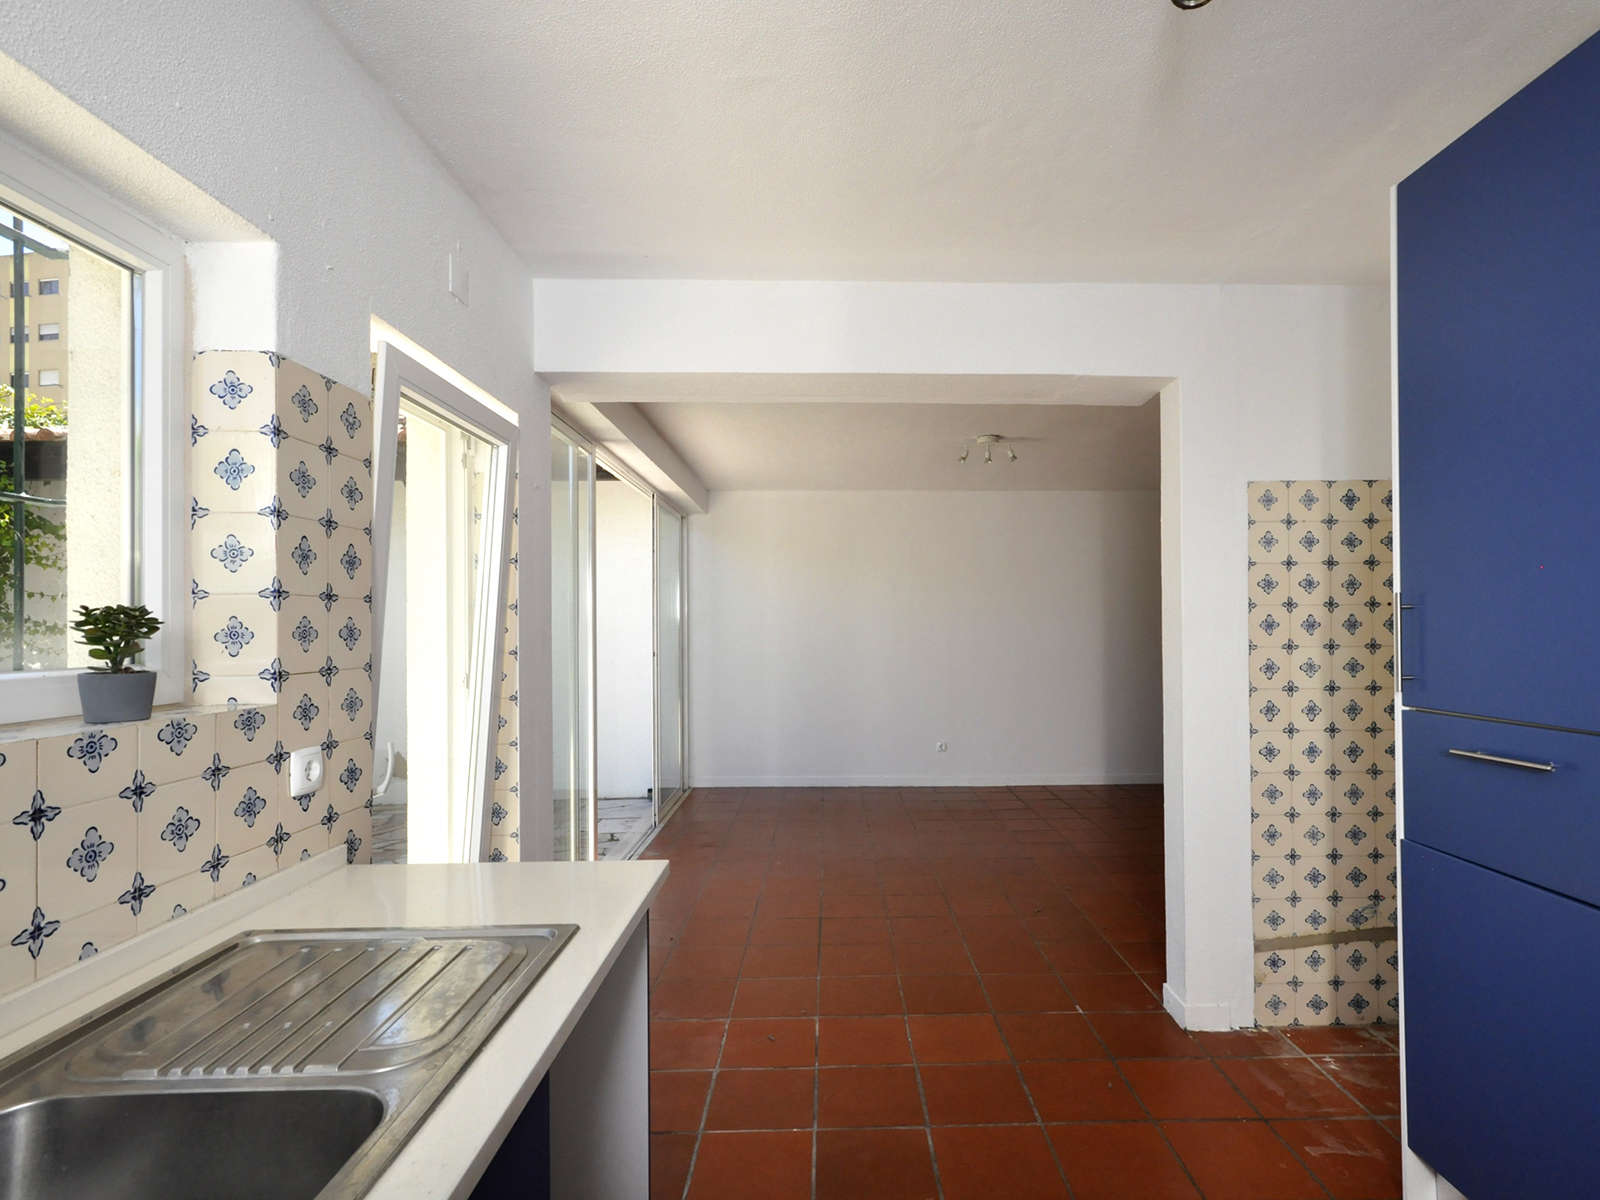 House T4 +1 Duplex equipped with central heating, garage and patio in Sassoeiros / Carcavelos – Opportunity!